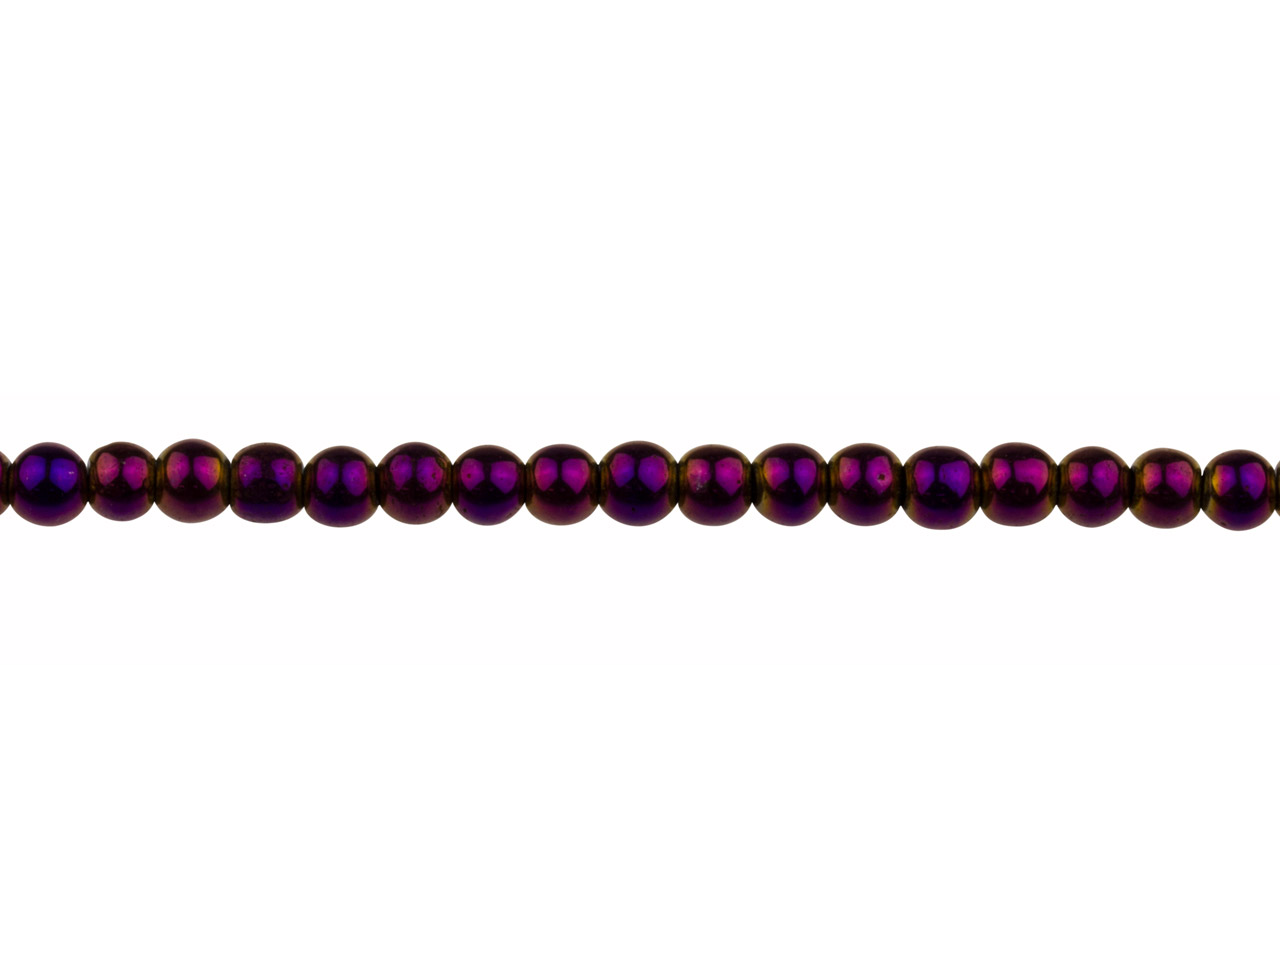 Electroplated Hematite Semi        Precious Round Beads, Purple, 4mm, 16